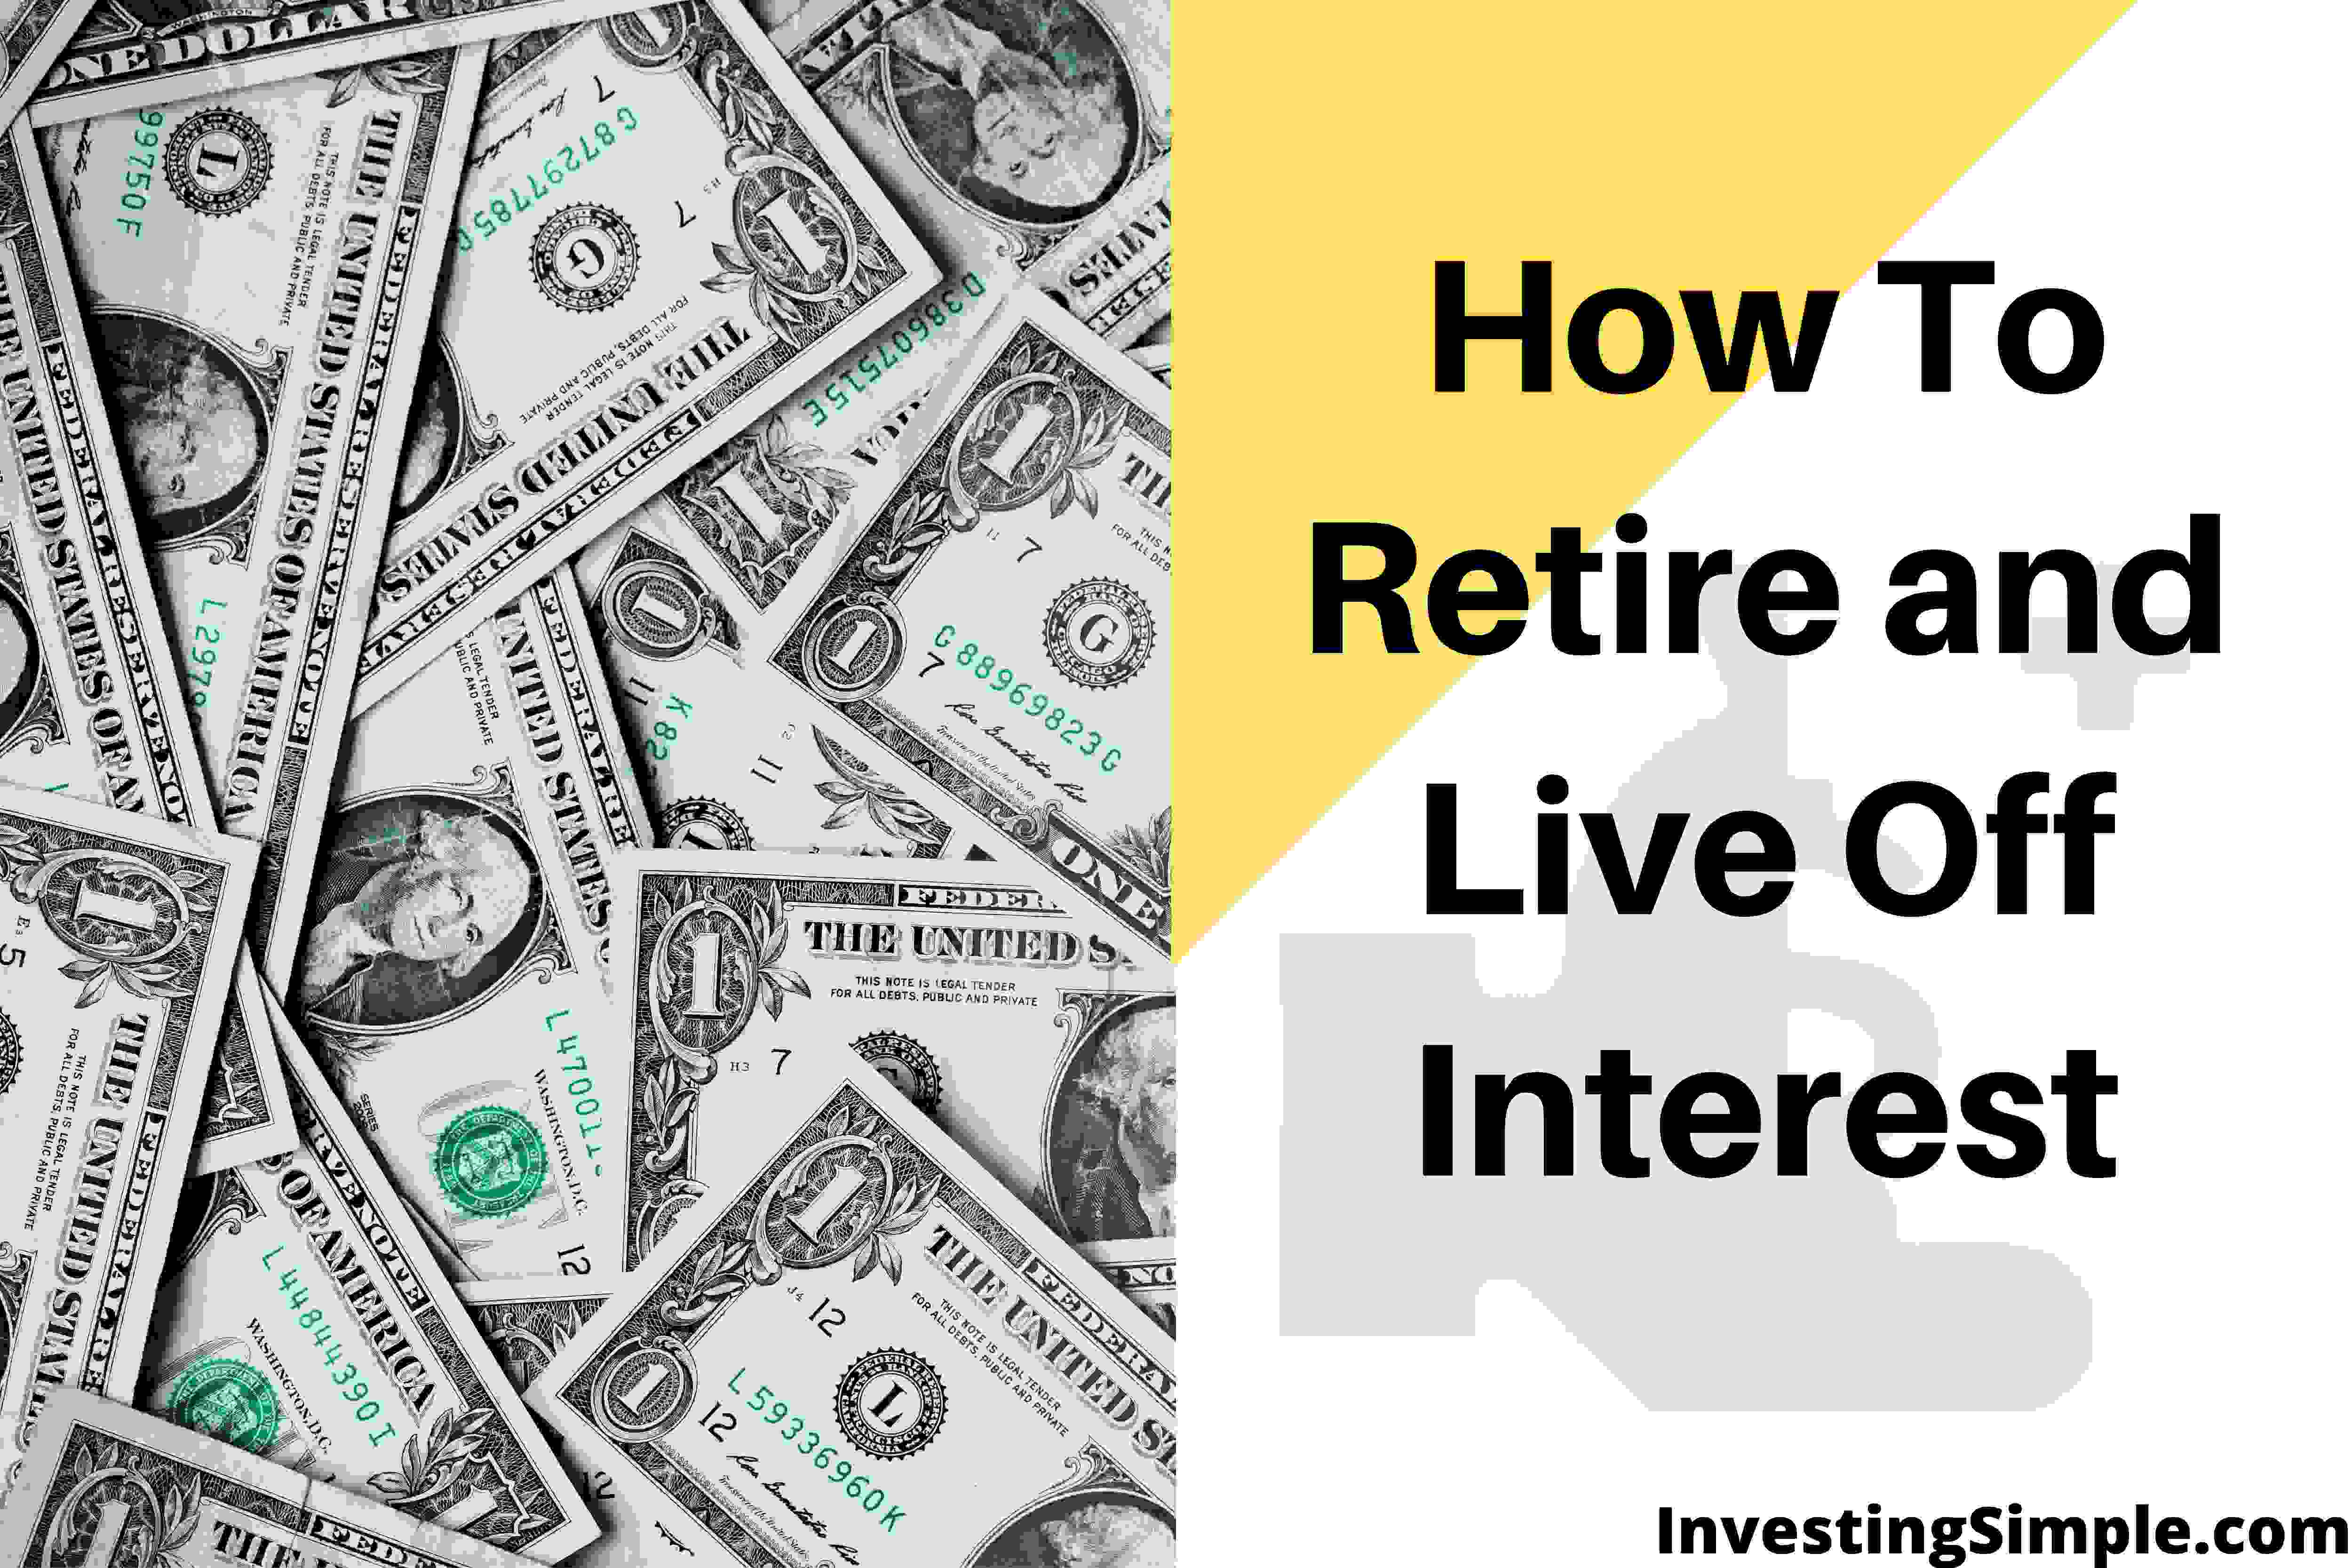 How do you retire and live off of the interest?